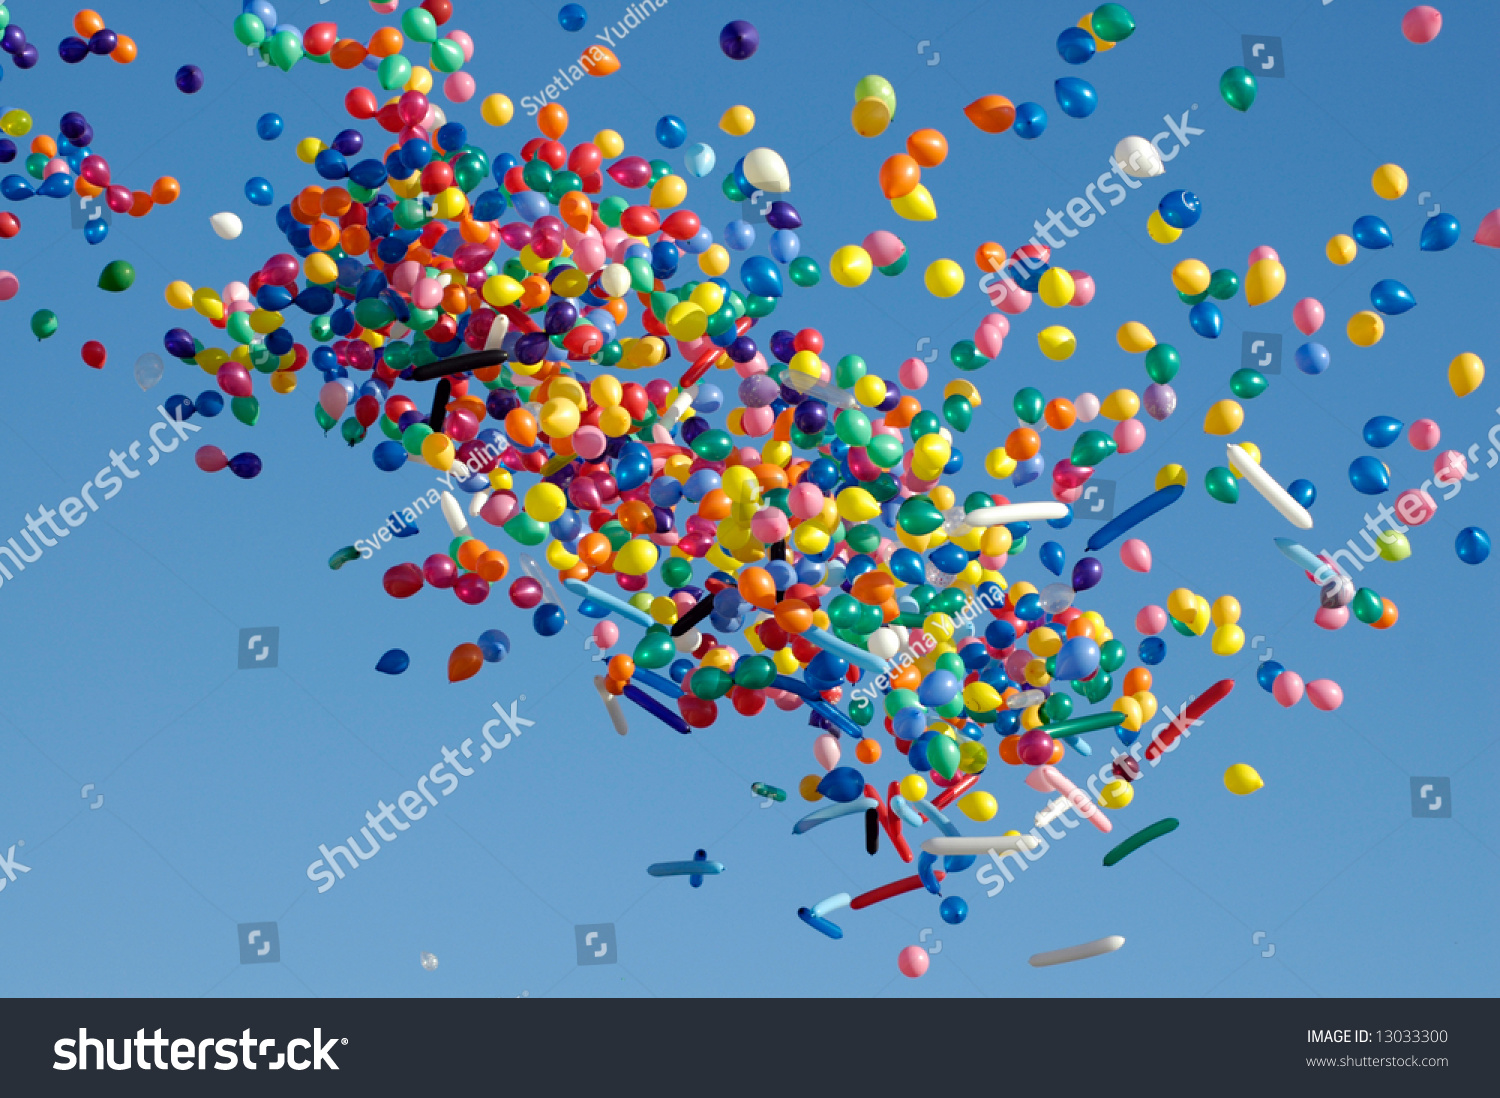 Colored Air Balloons Sky Stock Photo 13033300 - Shutterstock